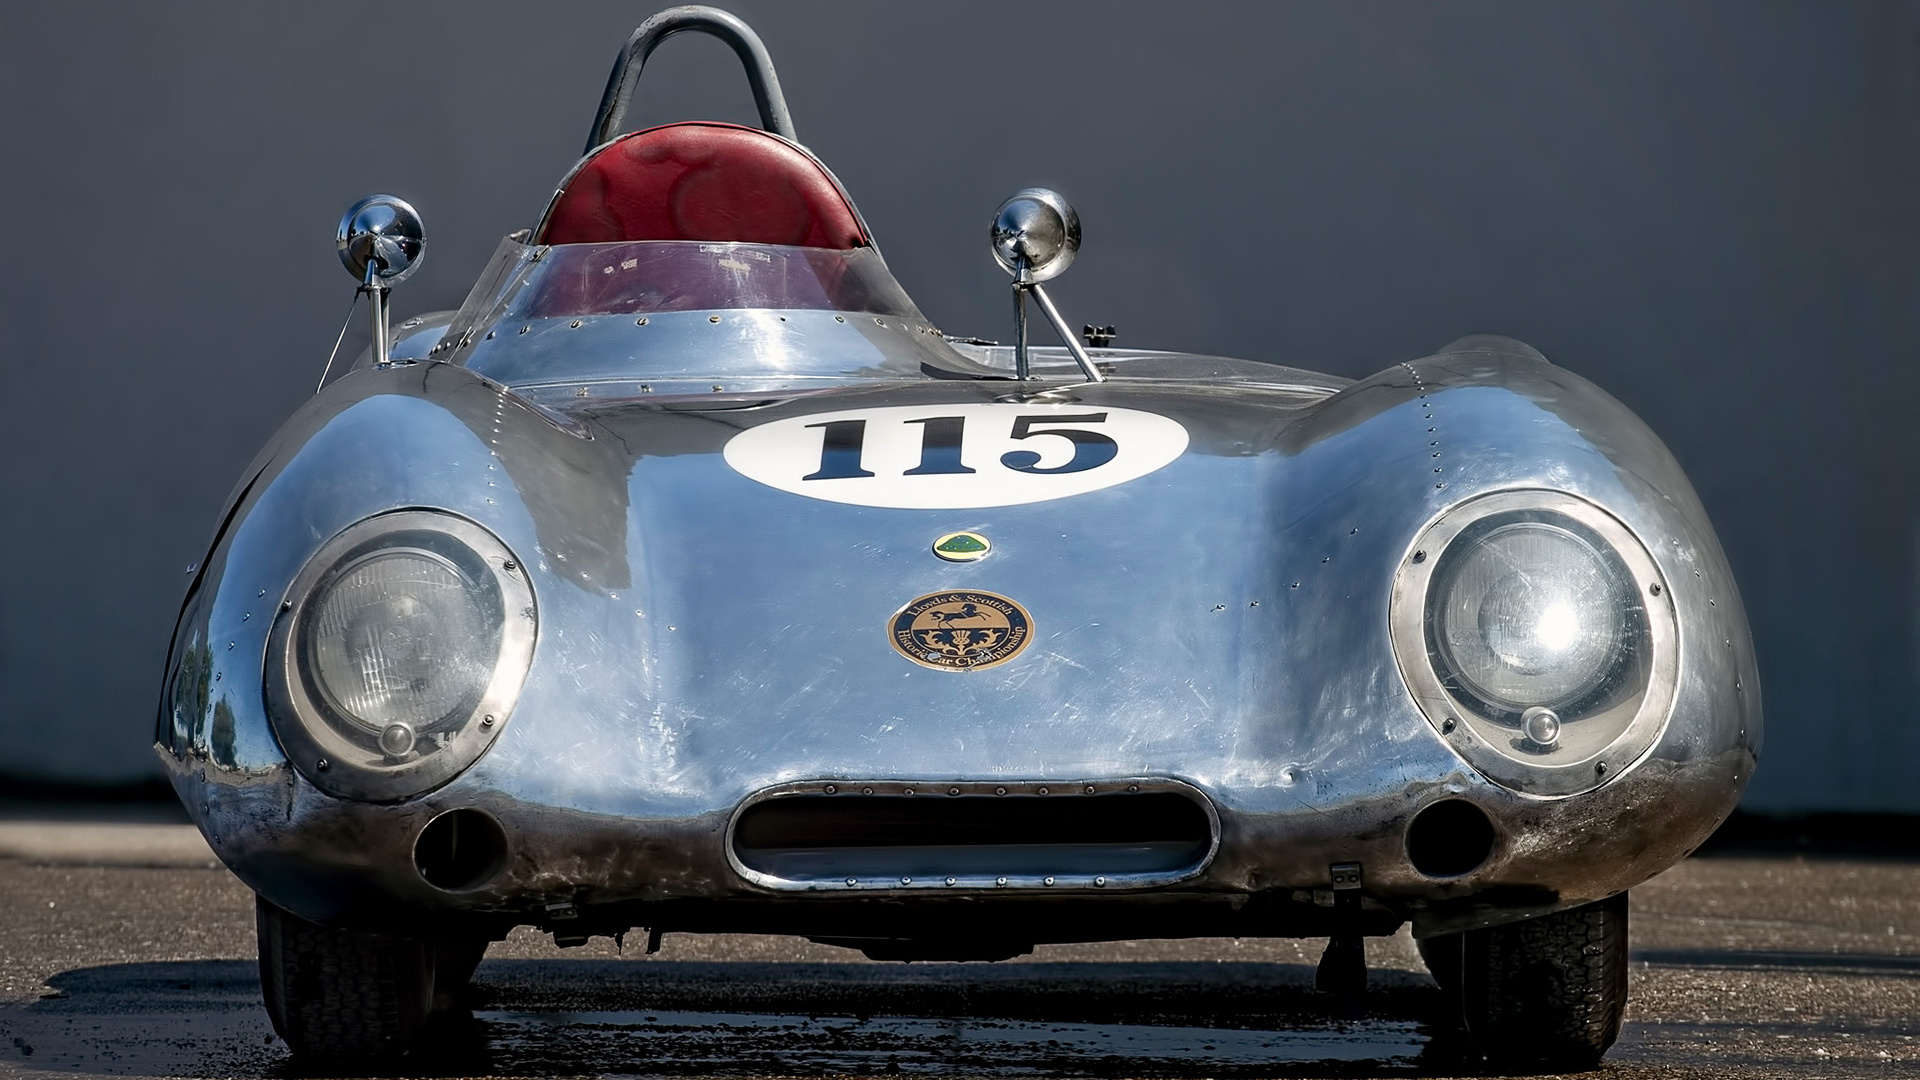 carpixel.net-1956-lotus-eleven-189-42214-hd.jpg